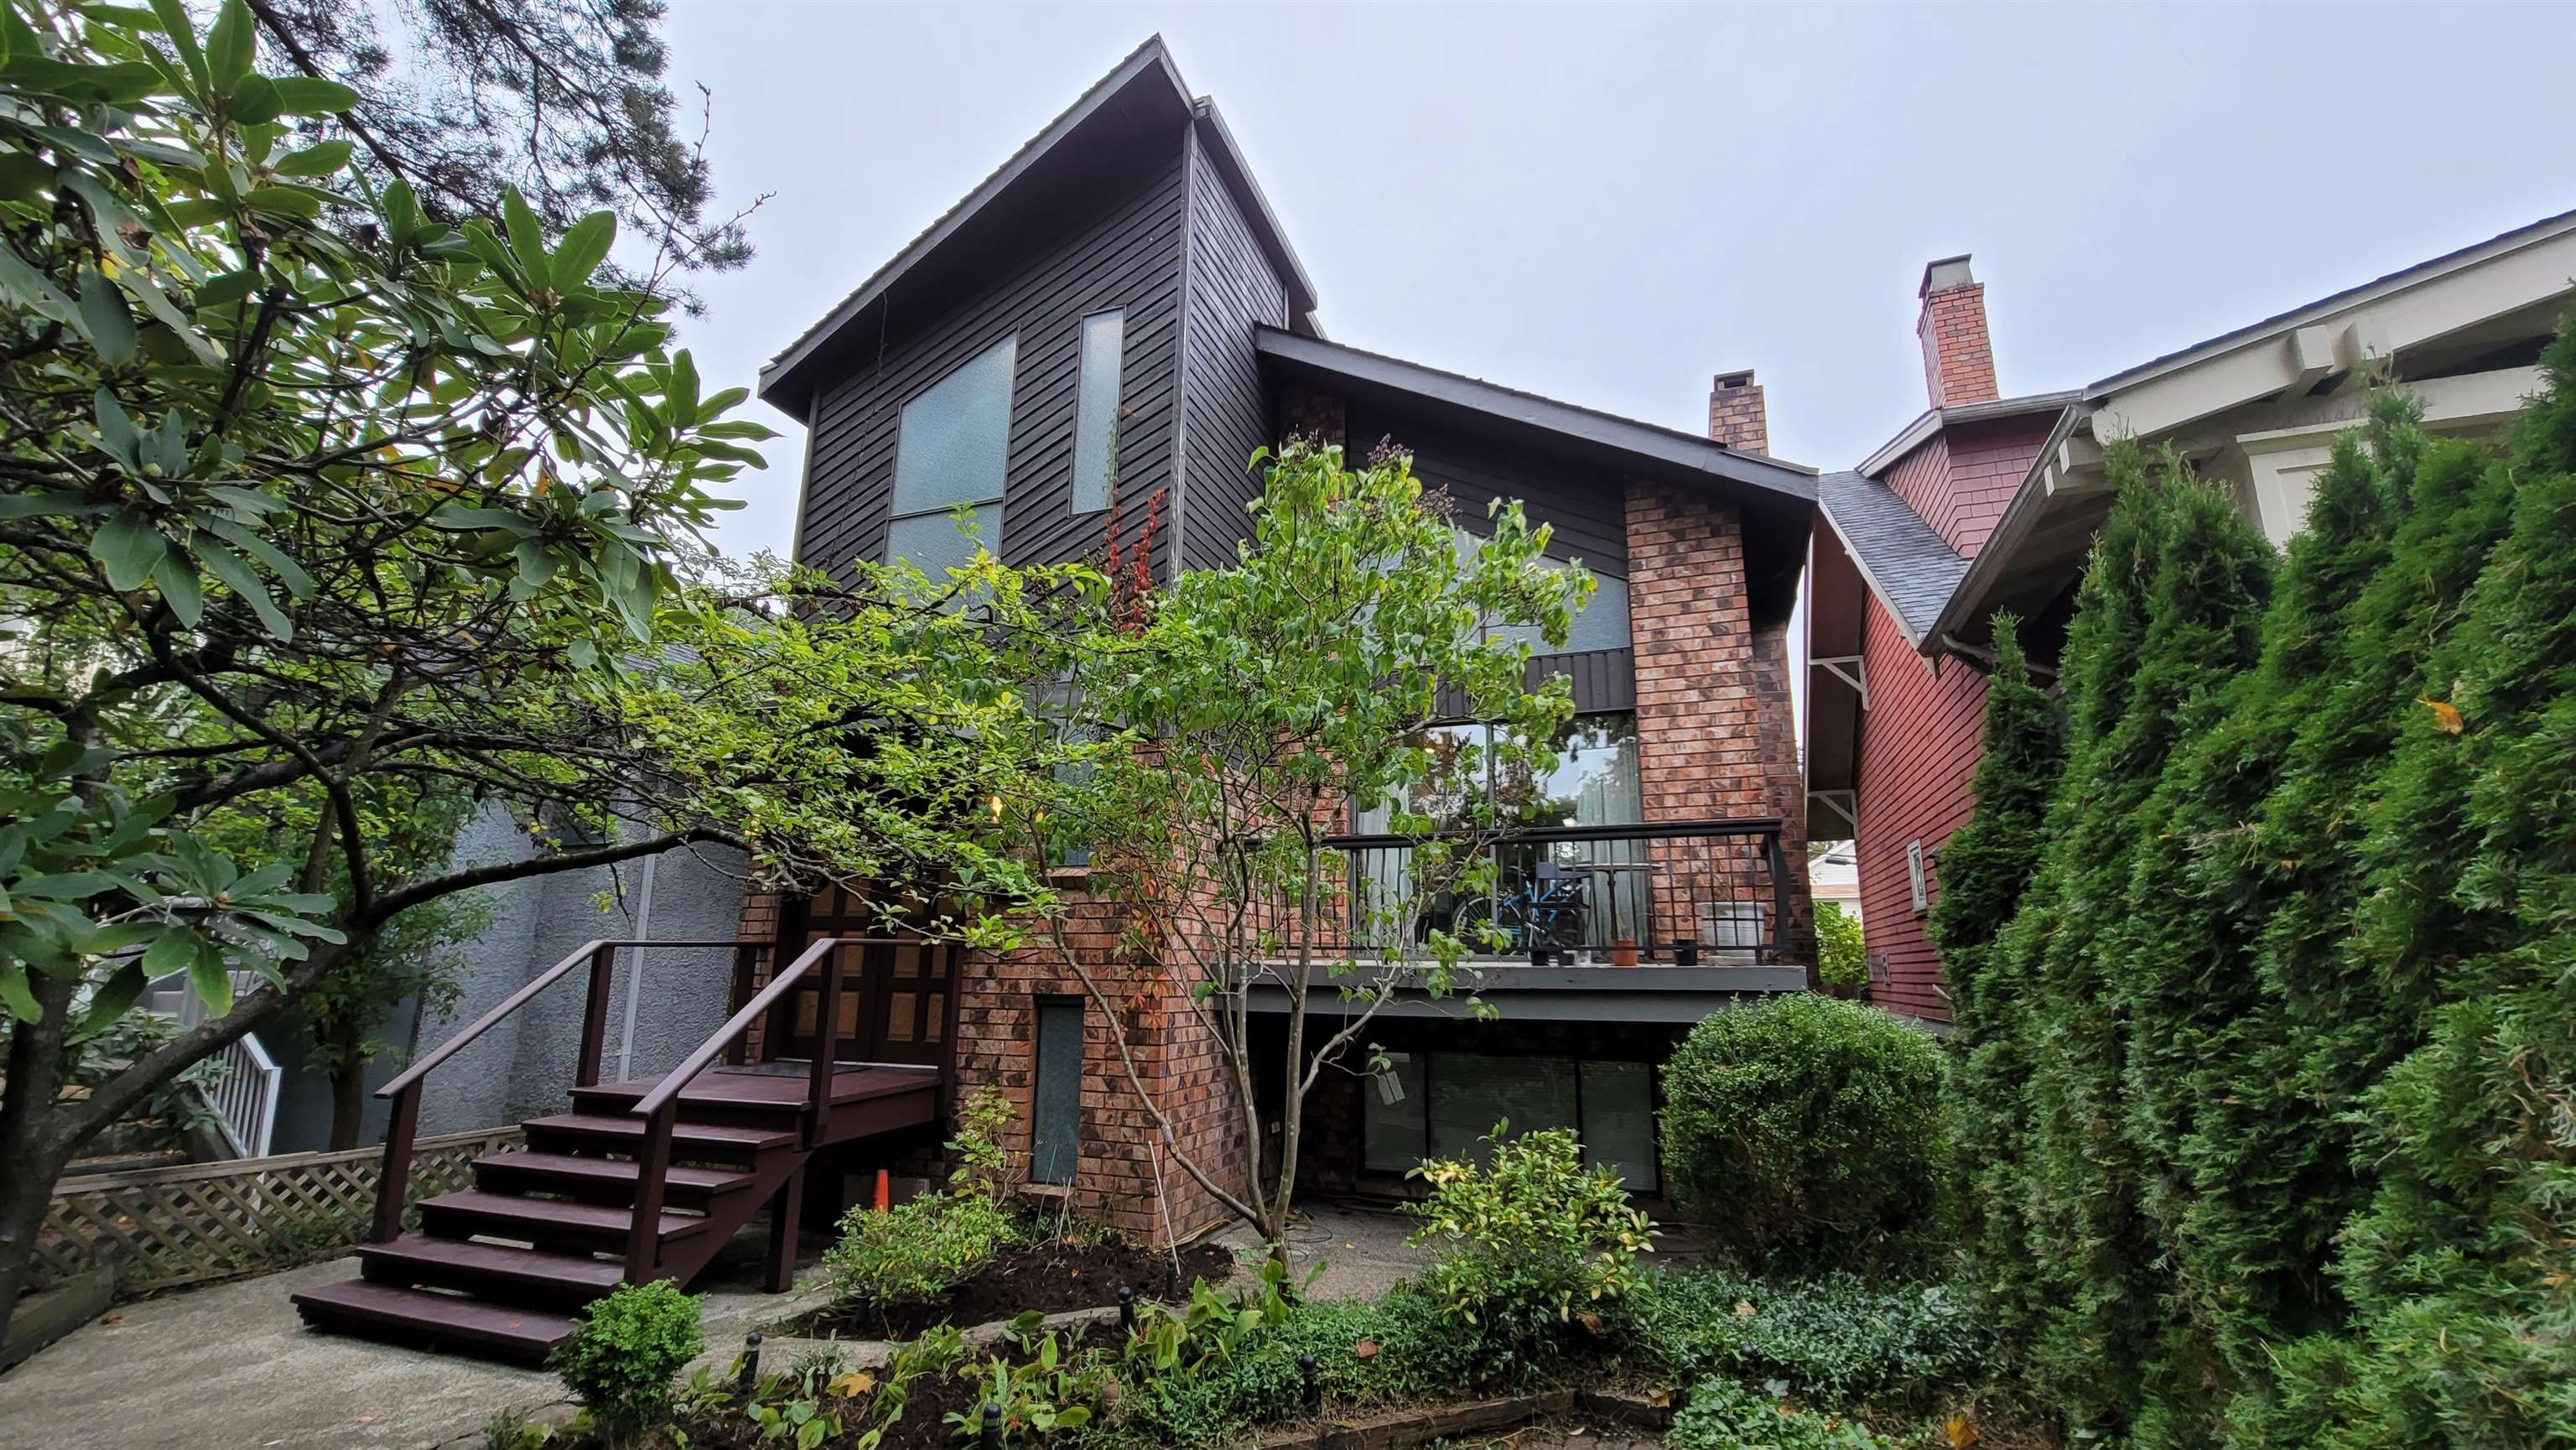 Main Photo: 3651 W 6TH Avenue in Vancouver: Kitsilano House for sale (Vancouver West)  : MLS®# R2625224